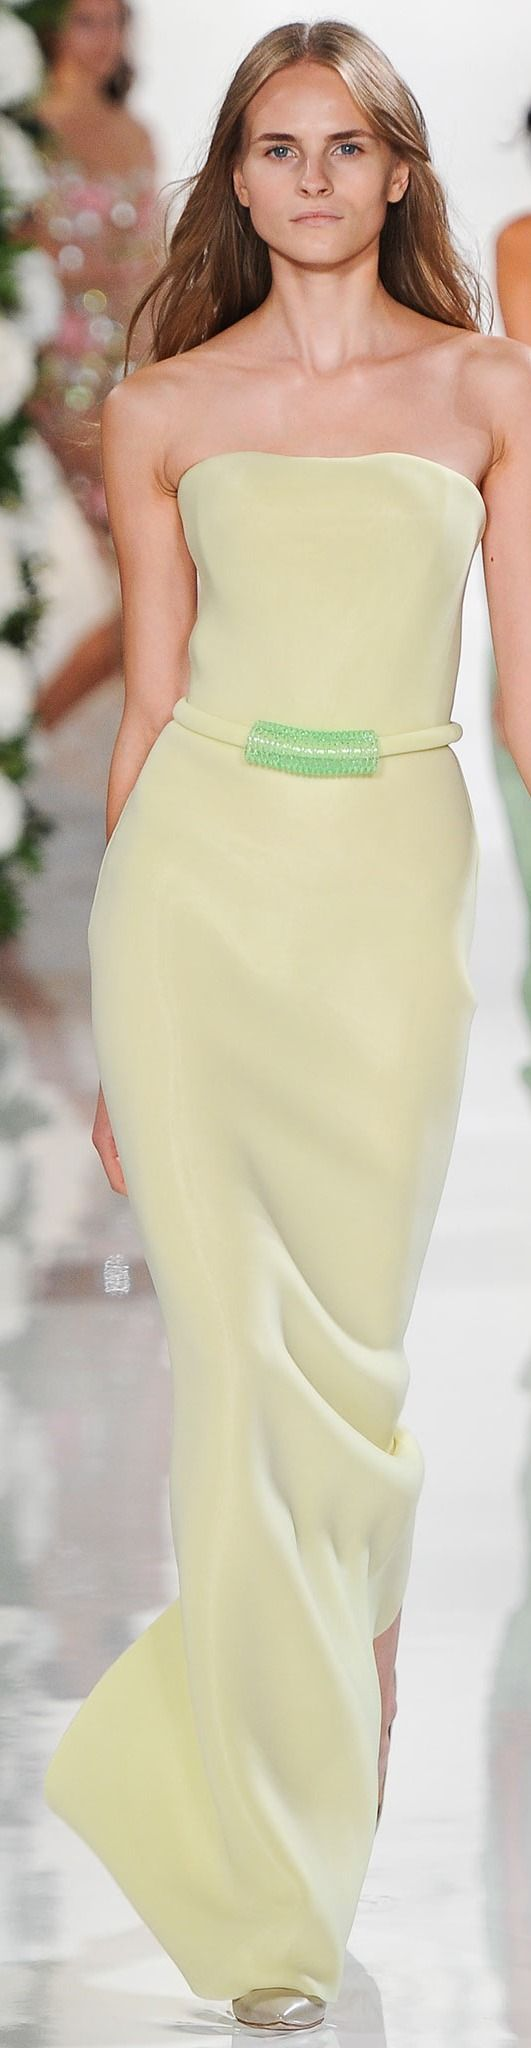 Valentin Yudashkin Collection Spring 2015……THE COLOR LOOKS LIKE LEMON-LIME SHERBERT…….SO PLEASING TO THE EYE……..ccp